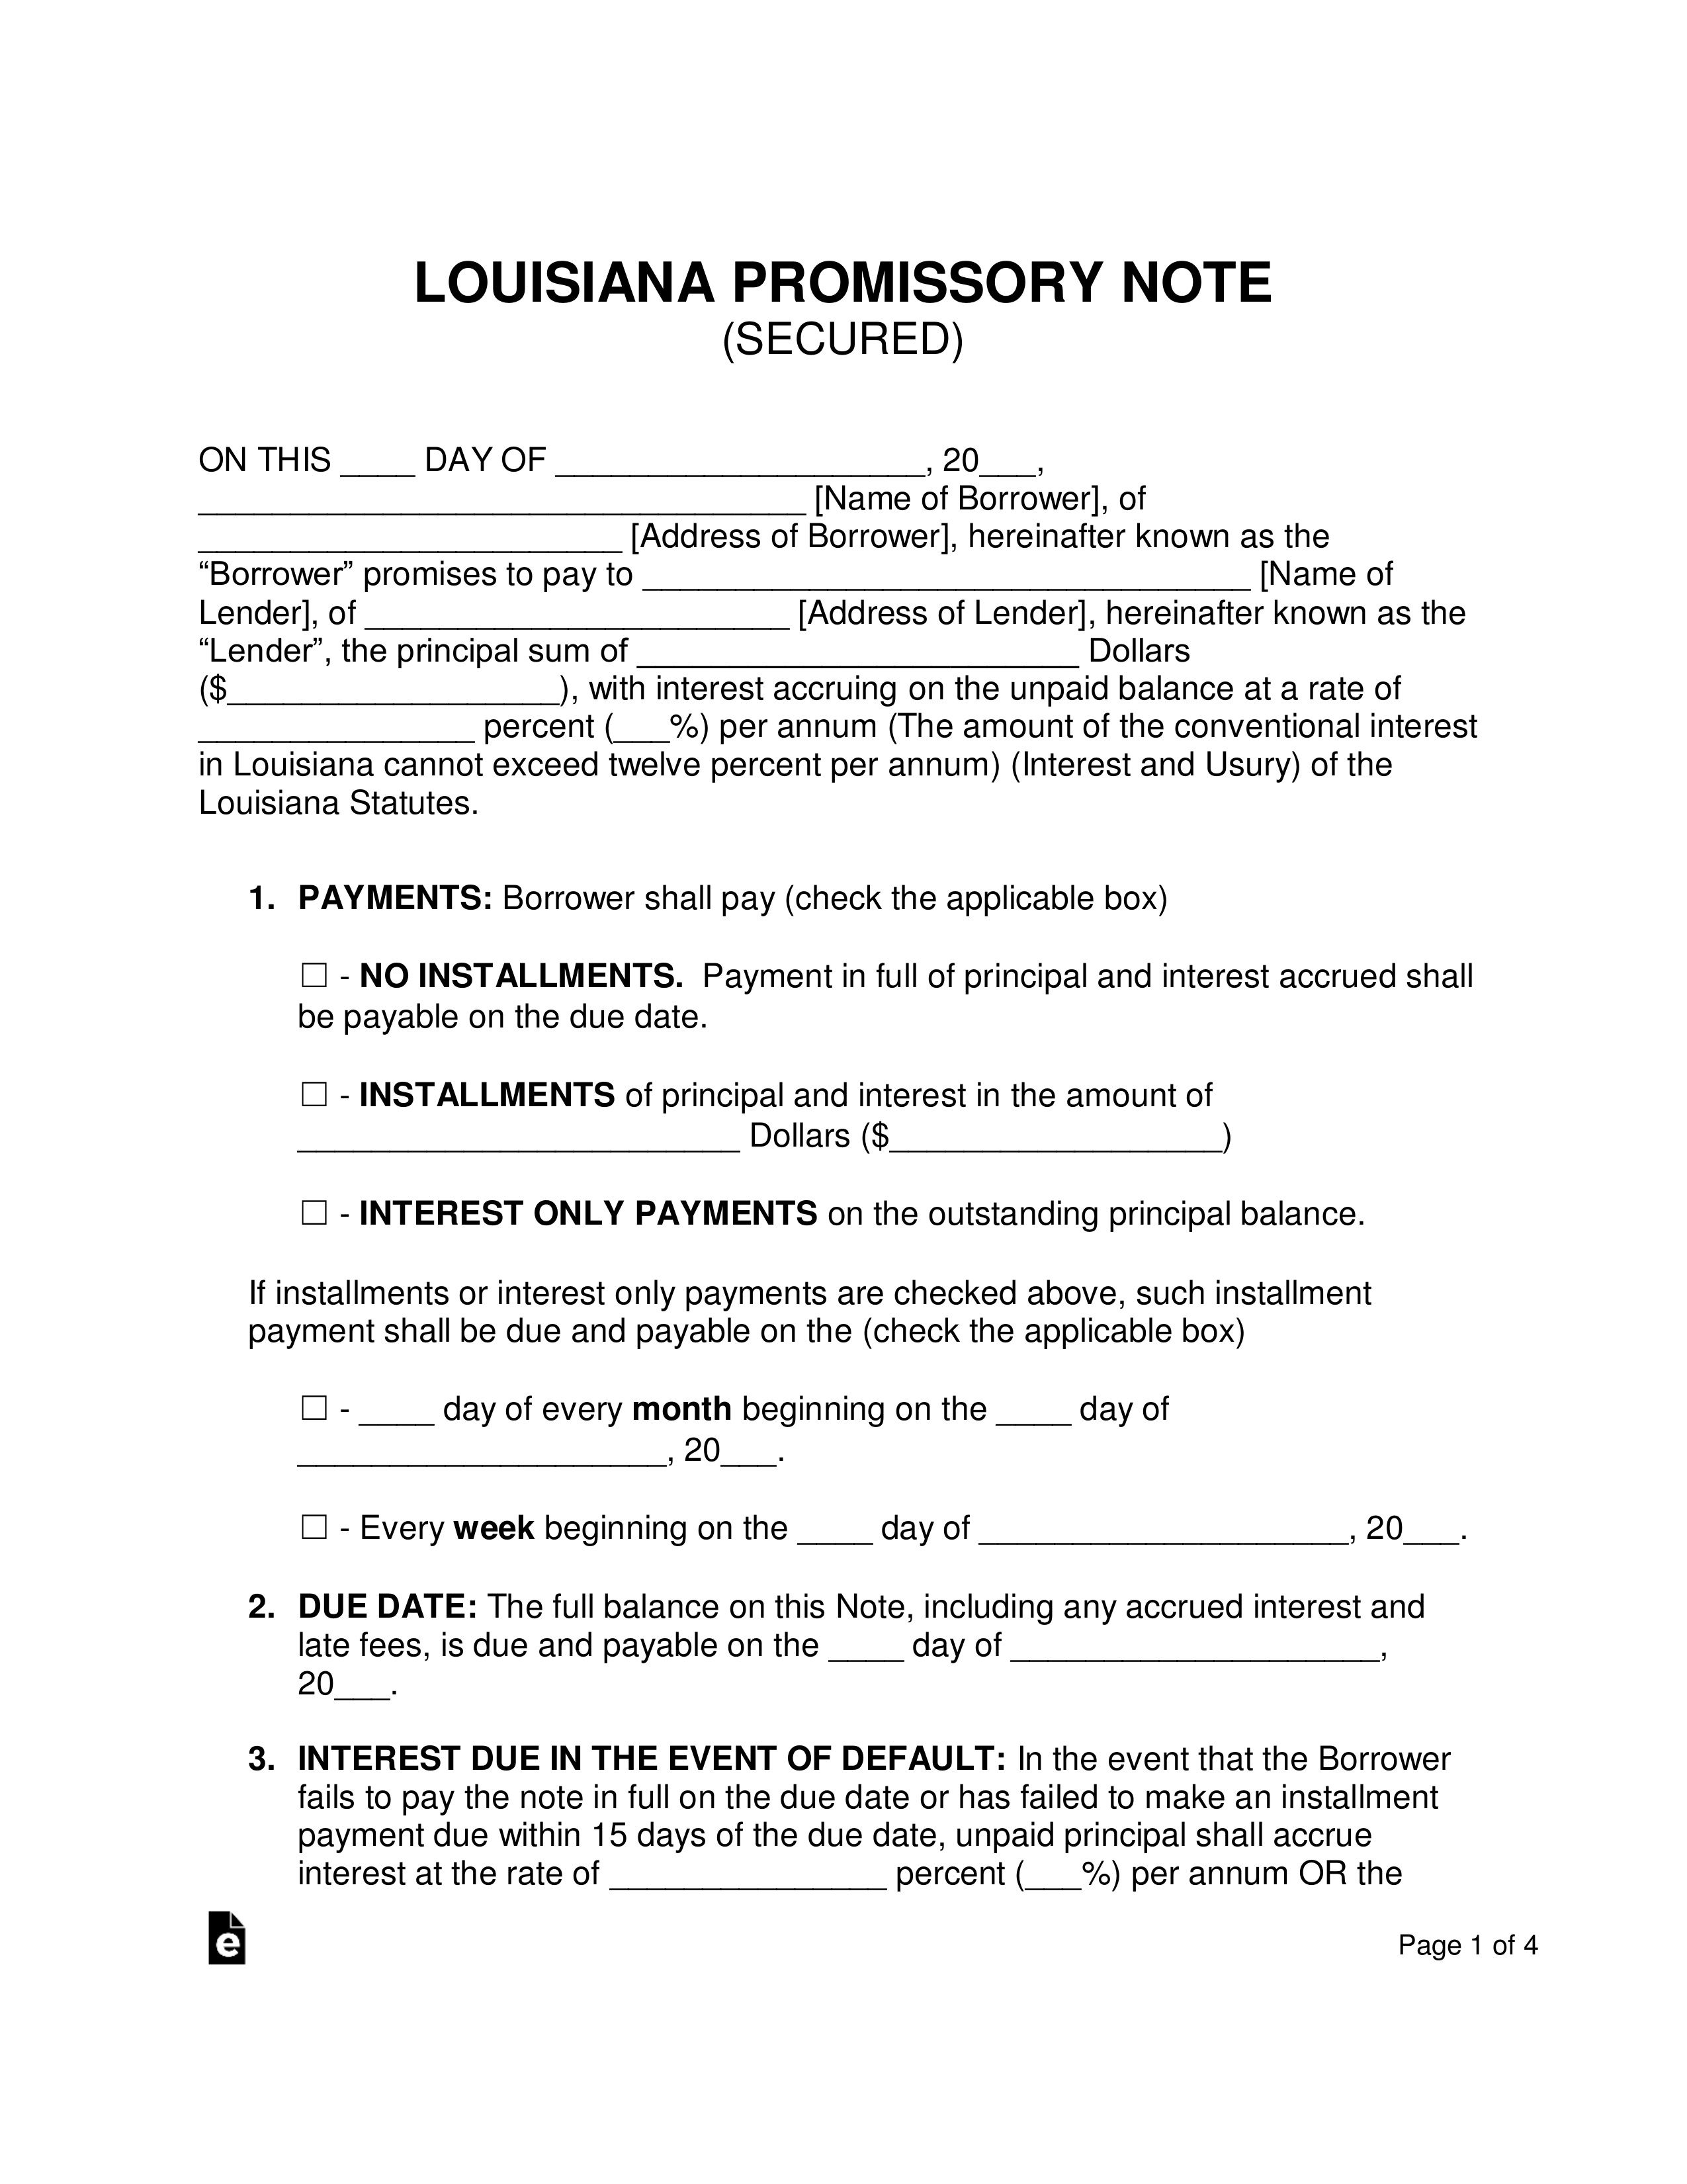 002 Wonderful Loan Promissory Note Template High Resolution  Family Busines Format For HandFull